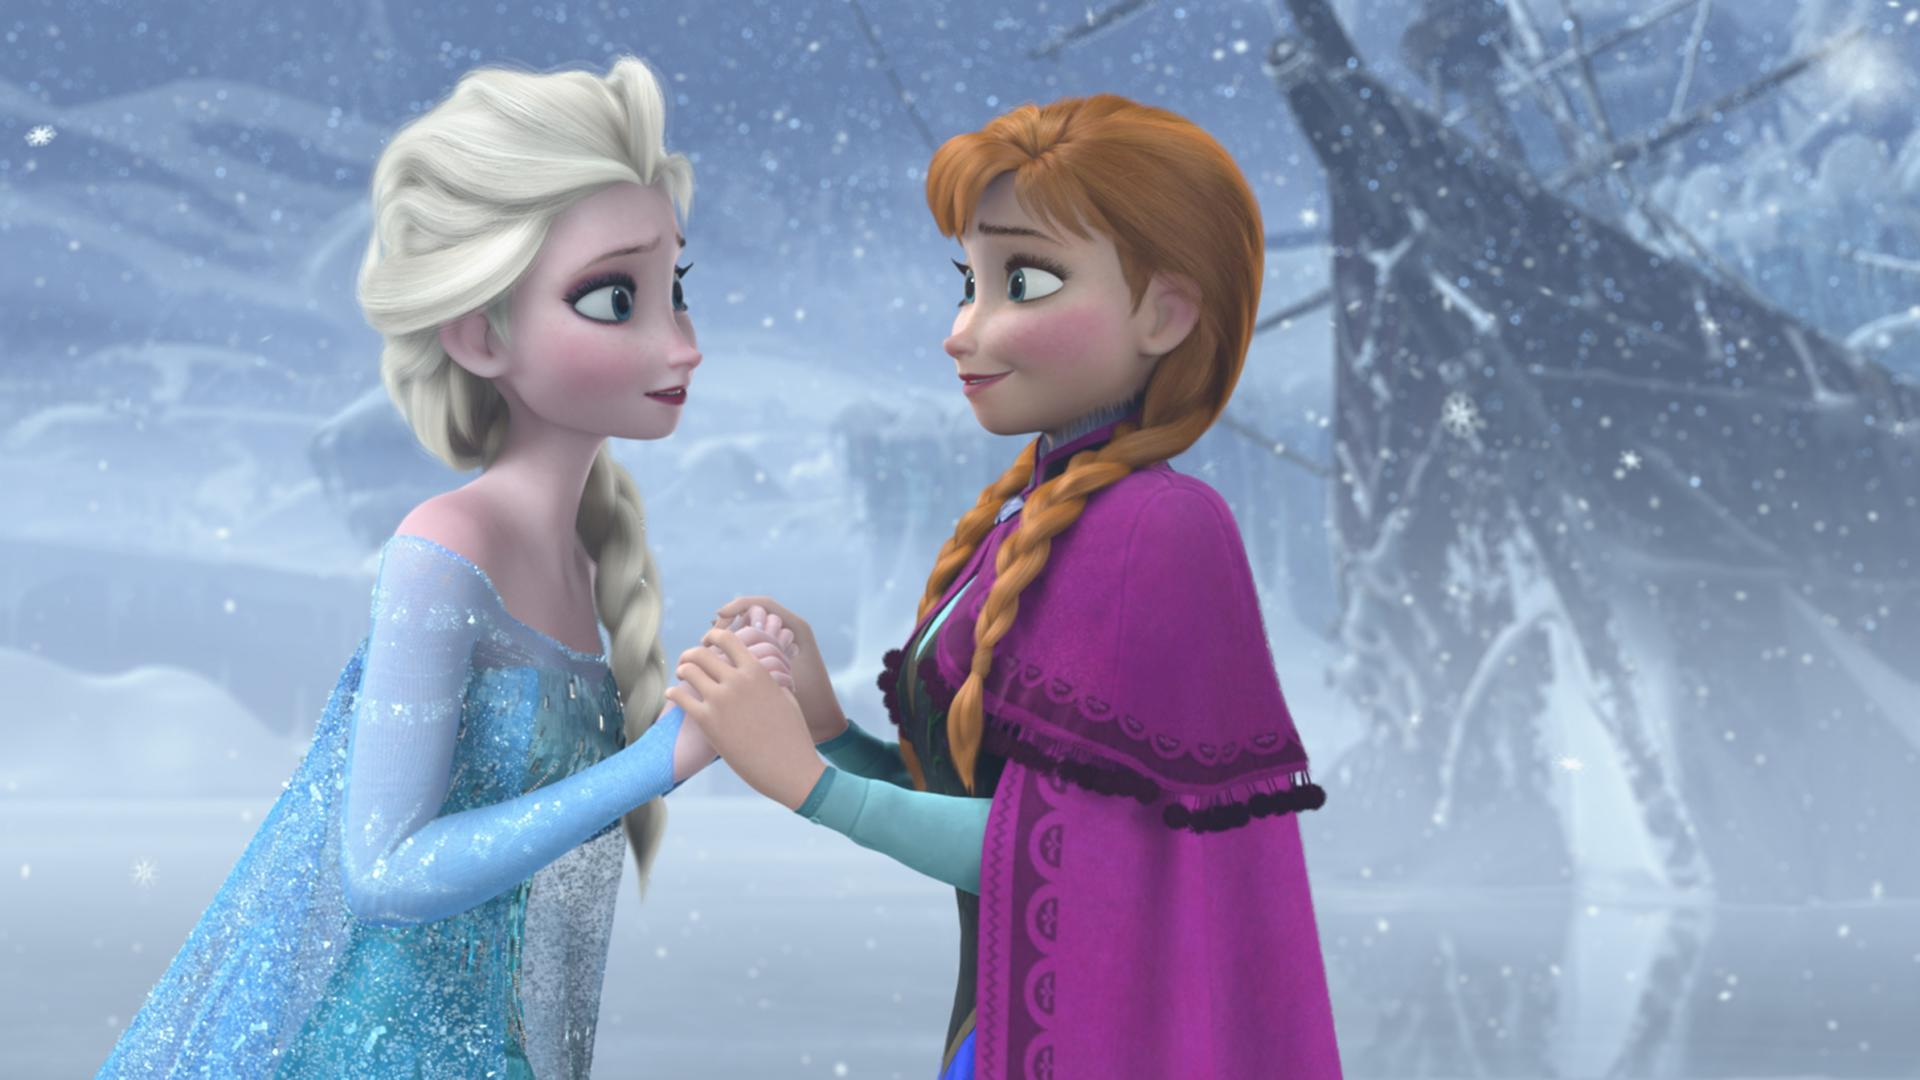 frozen 2 - photo #23